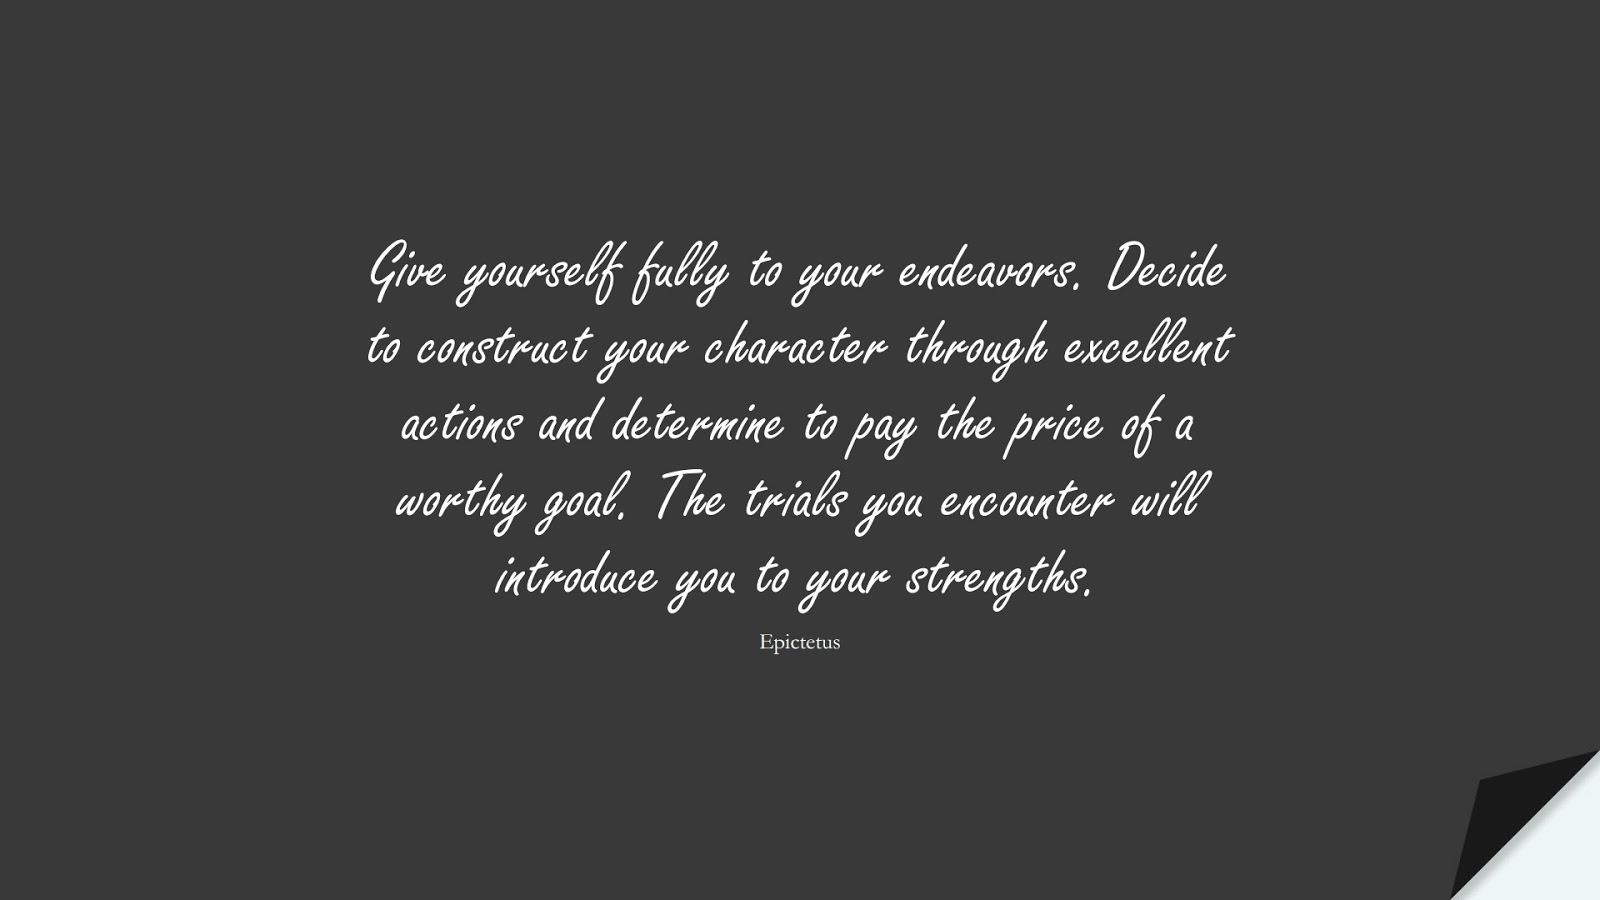 Give yourself fully to your endeavors. Decide to construct your character through excellent actions and determine to pay the price of a worthy goal. The trials you encounter will introduce you to your strengths. (Epictetus);  #StoicQuotes